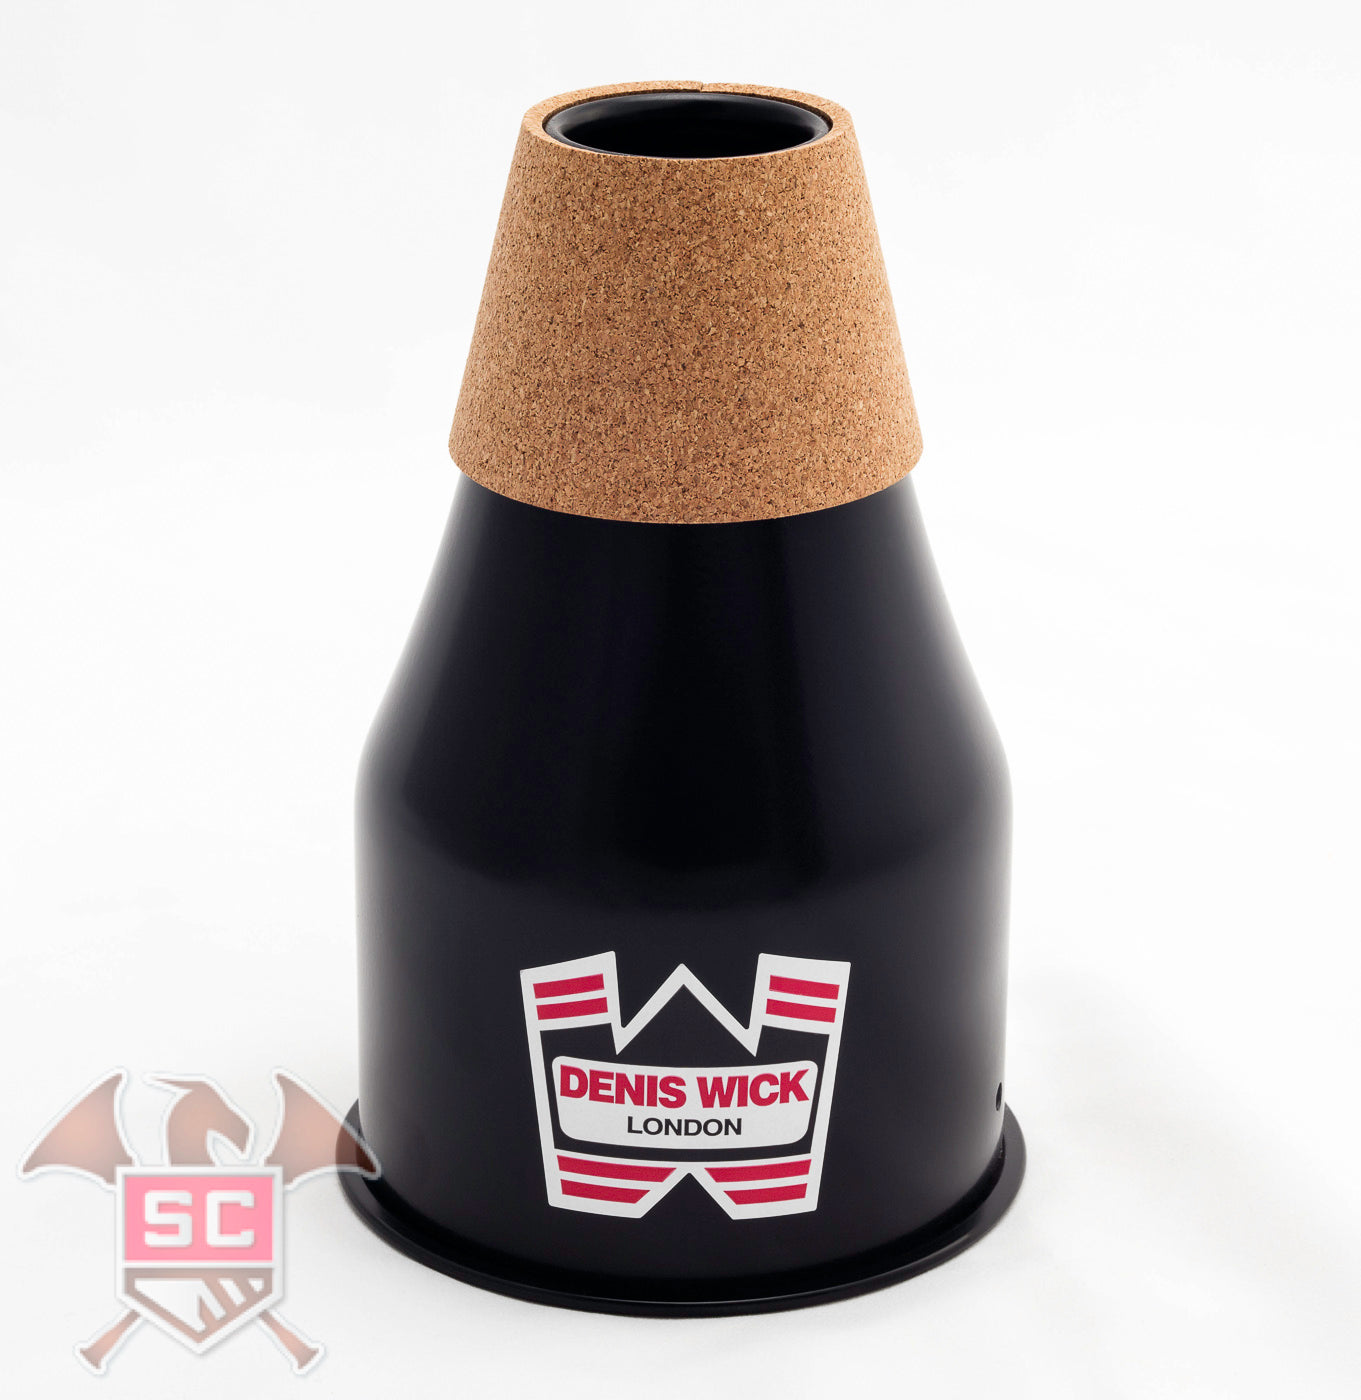 Denis Wick model 5530 DW5530 french horn practice mute